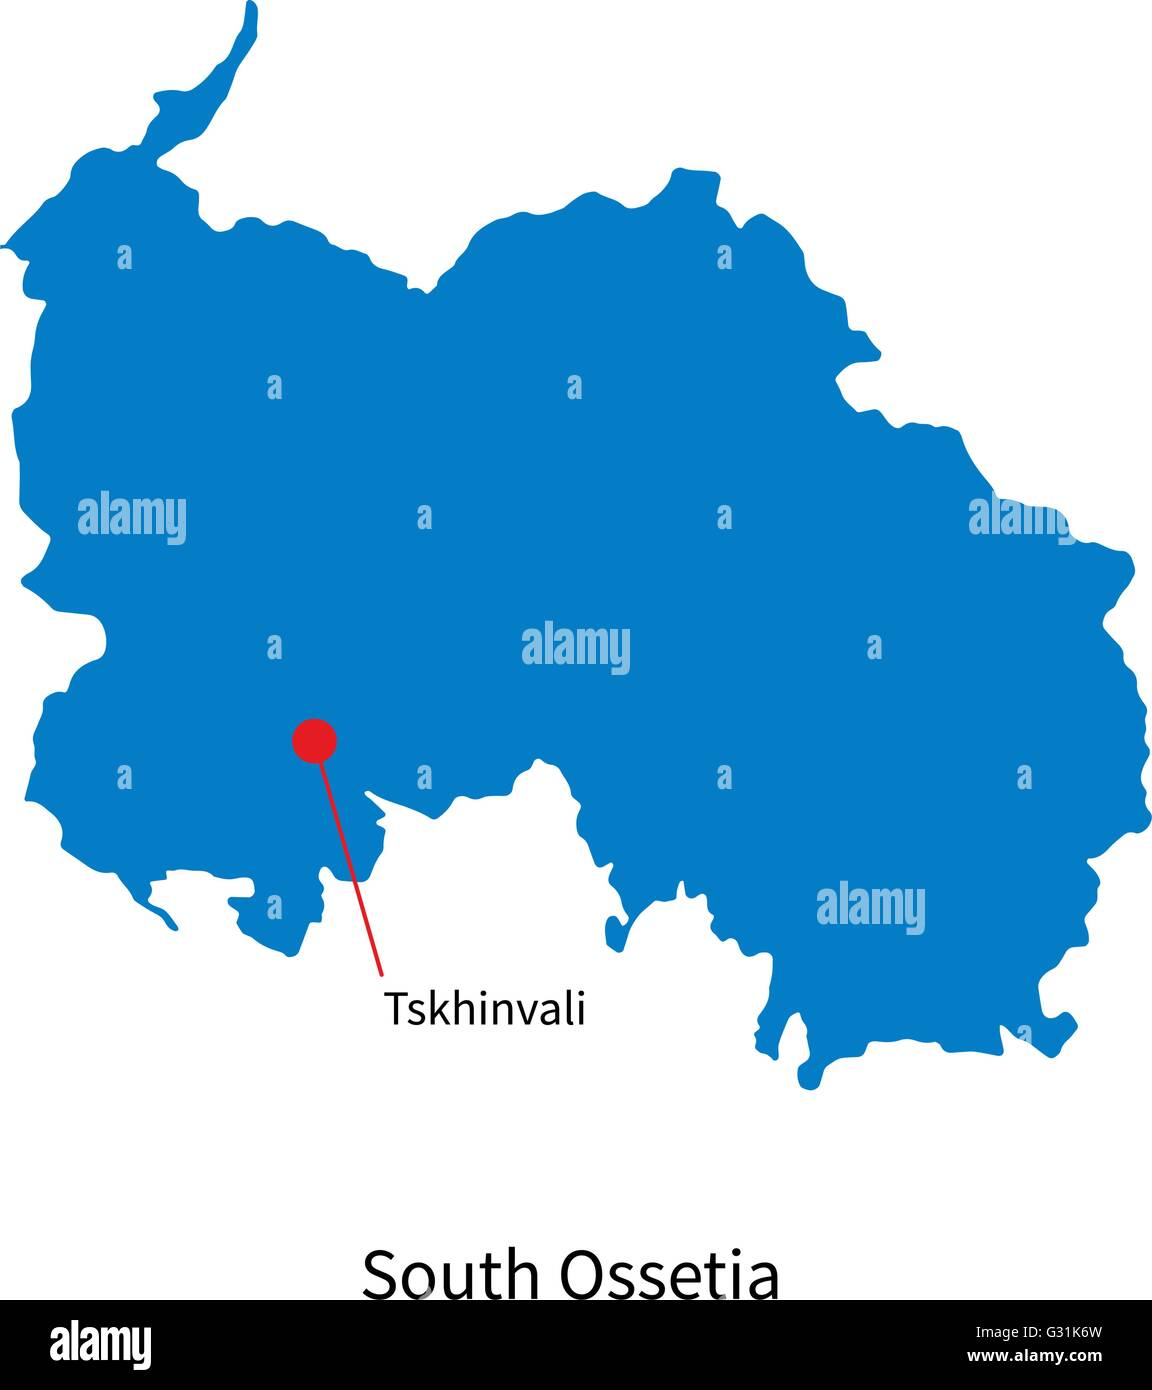 Detailed vector map of South Ossetia and capital city Tskhinvali - Stock Image